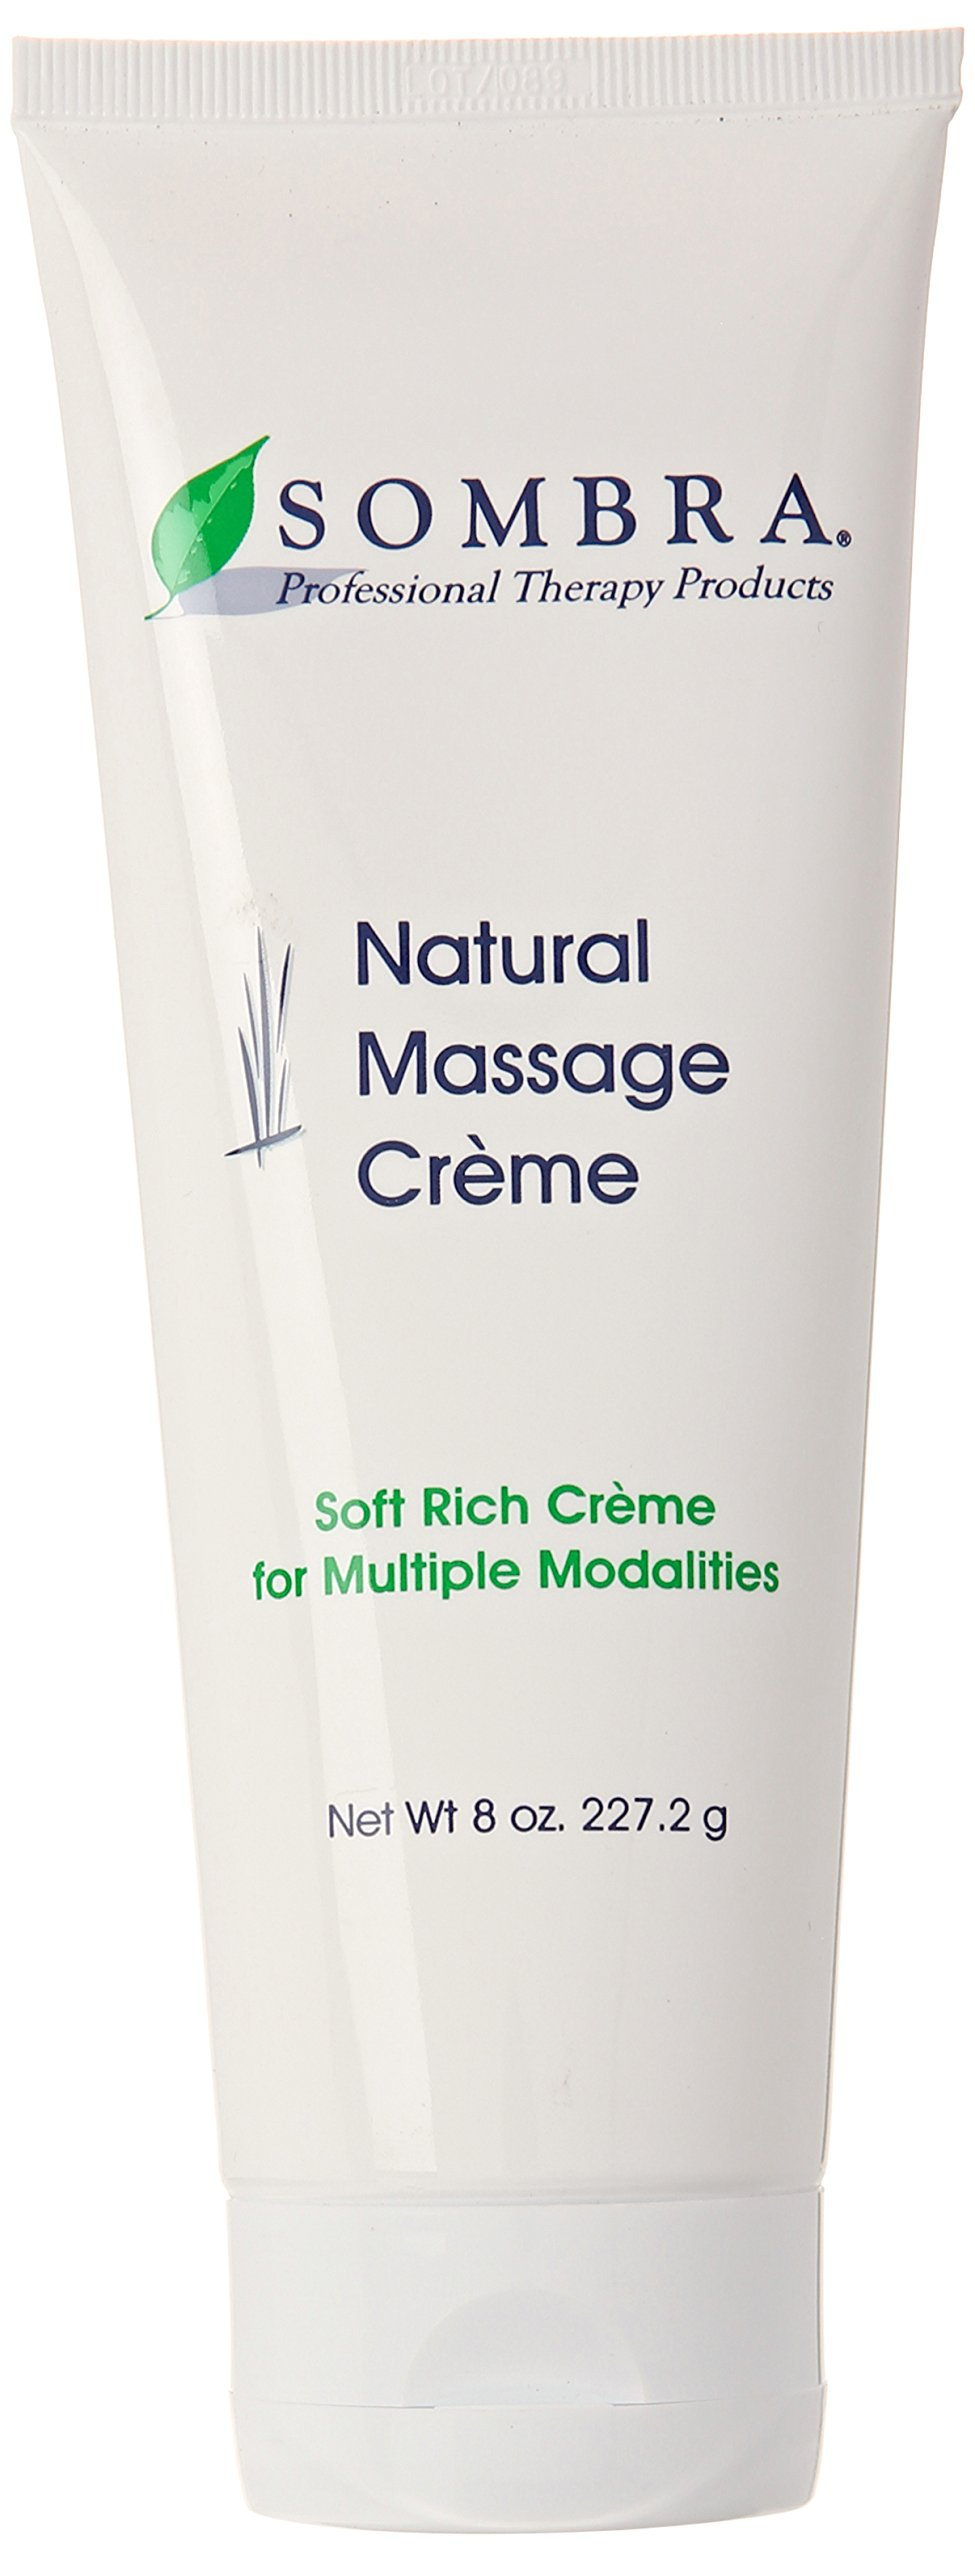 Sombra Natural Massage Creme, 8-Ounce